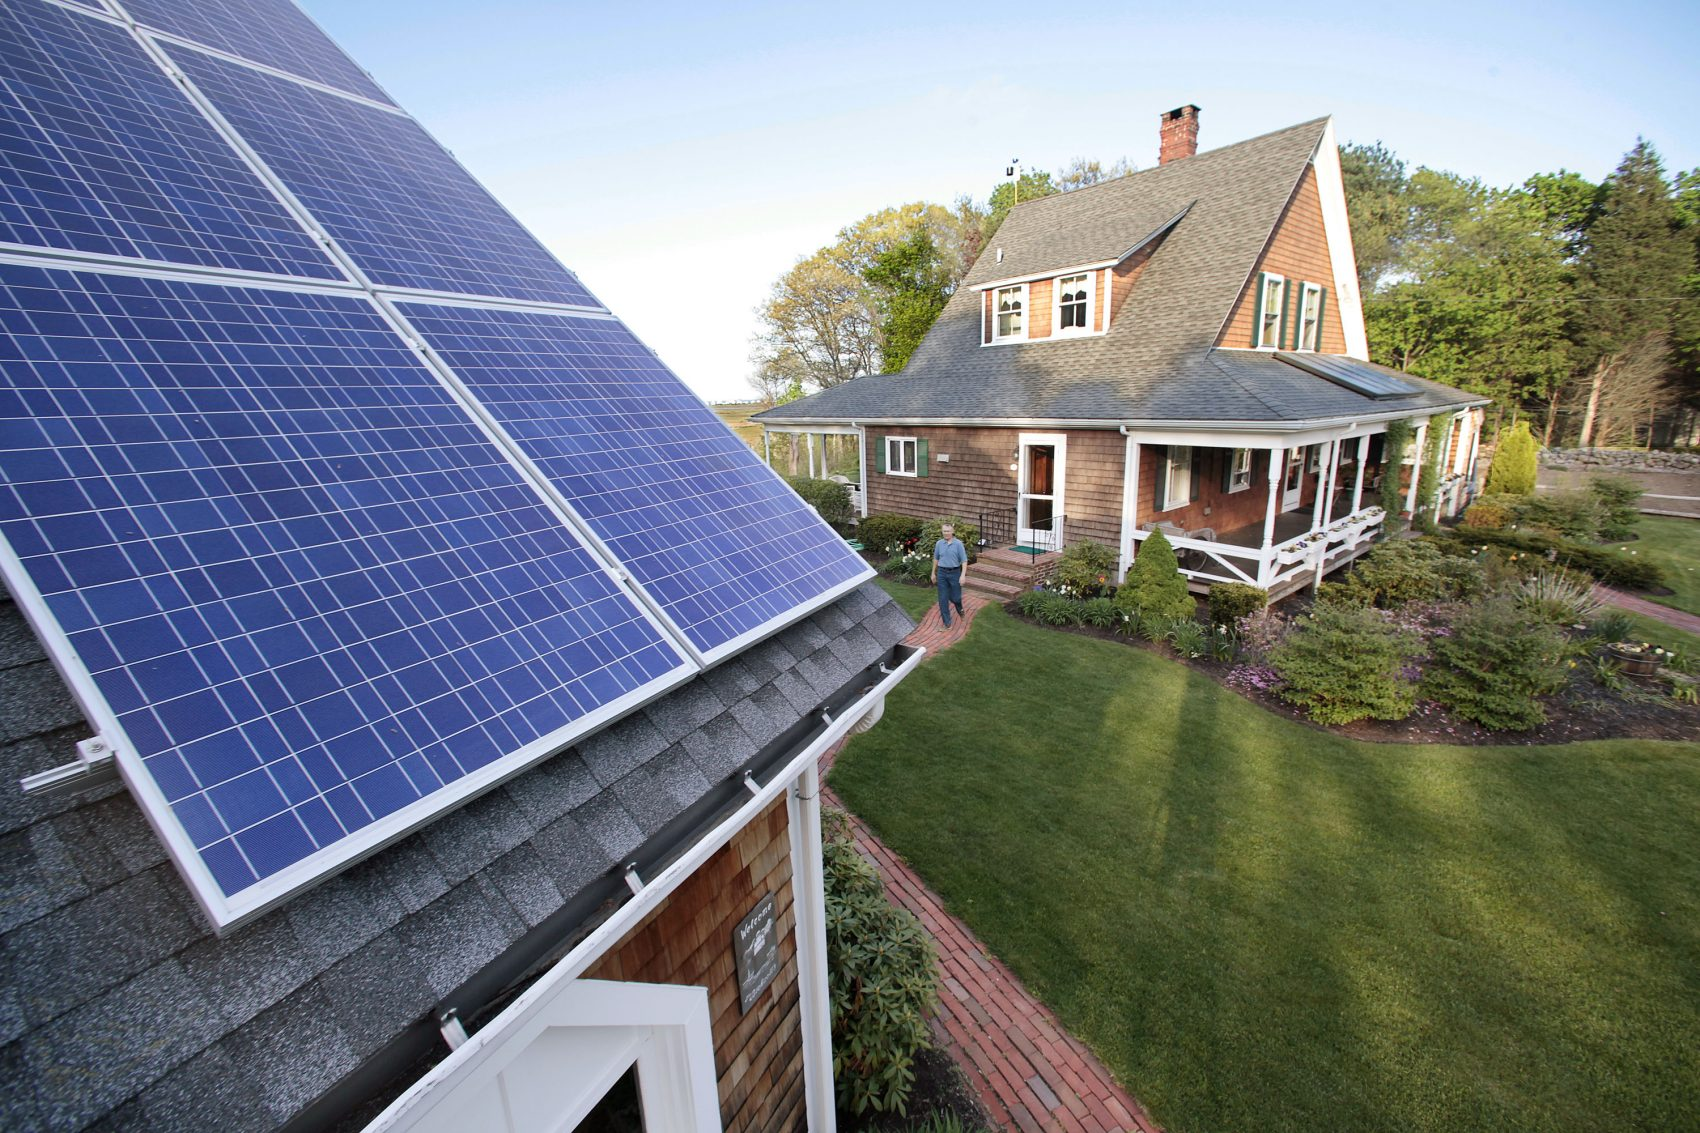 In this May 8, 2009 photo, Len Bicknell walks from his house to his garage where his solar energy panels are mounted on the roof in Marshfield, Mass. Bicknell's home is fitted with both thermal panels for hot water production and electric solar panels for energy production. (Stephan Savoia/AP)